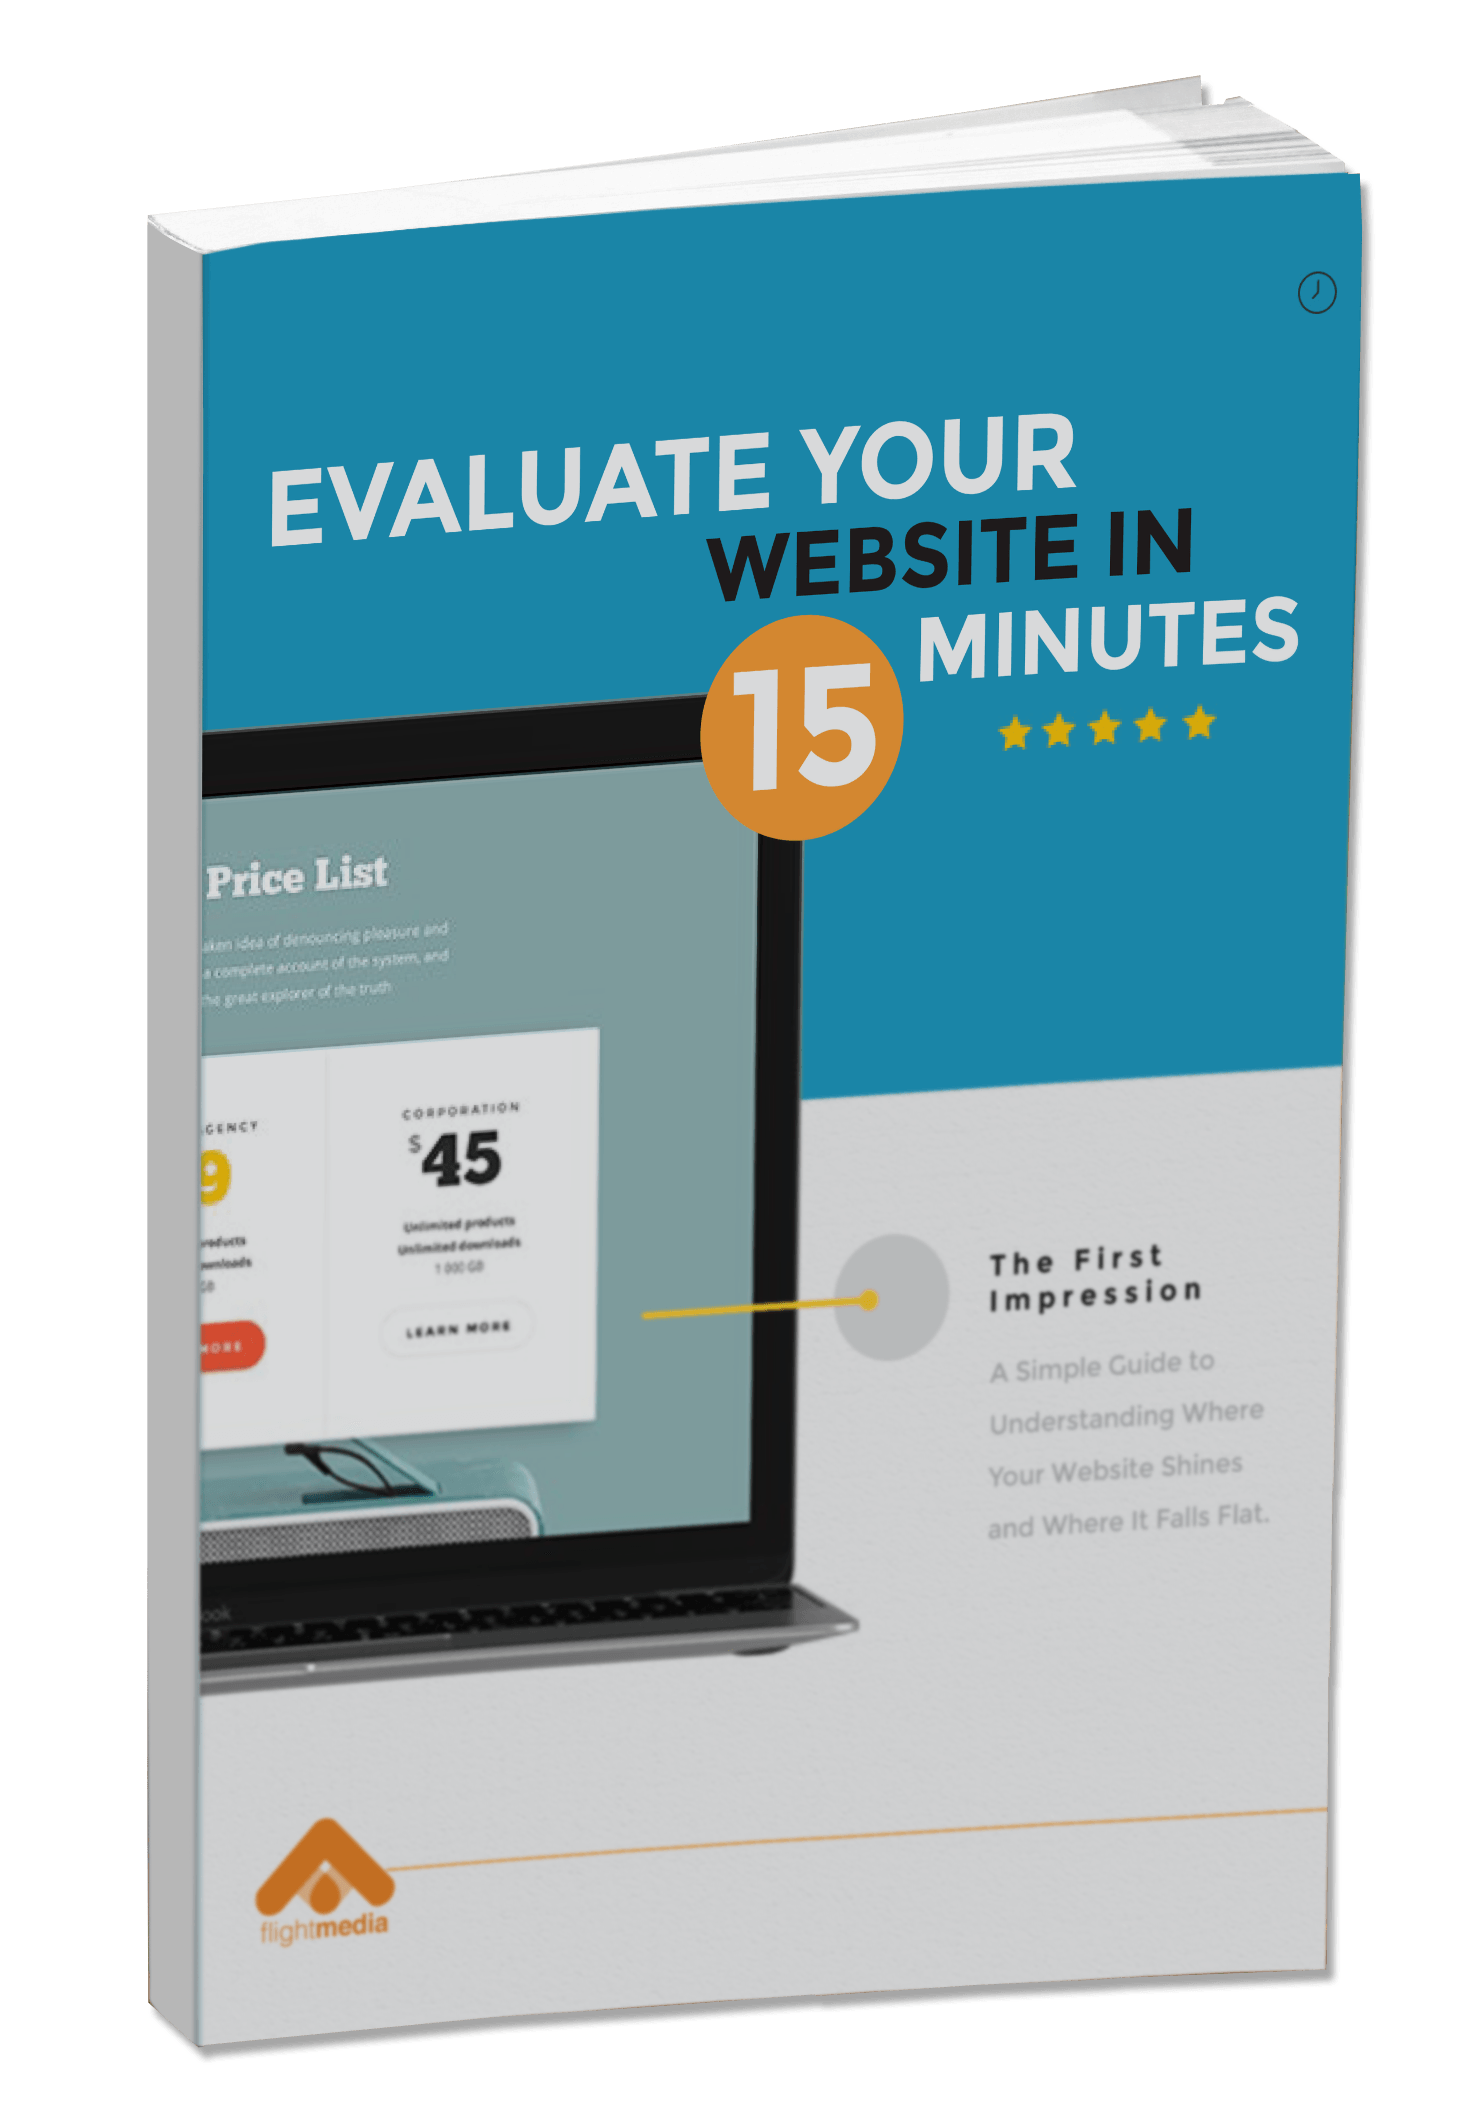 evaluate-your-website-15min.png